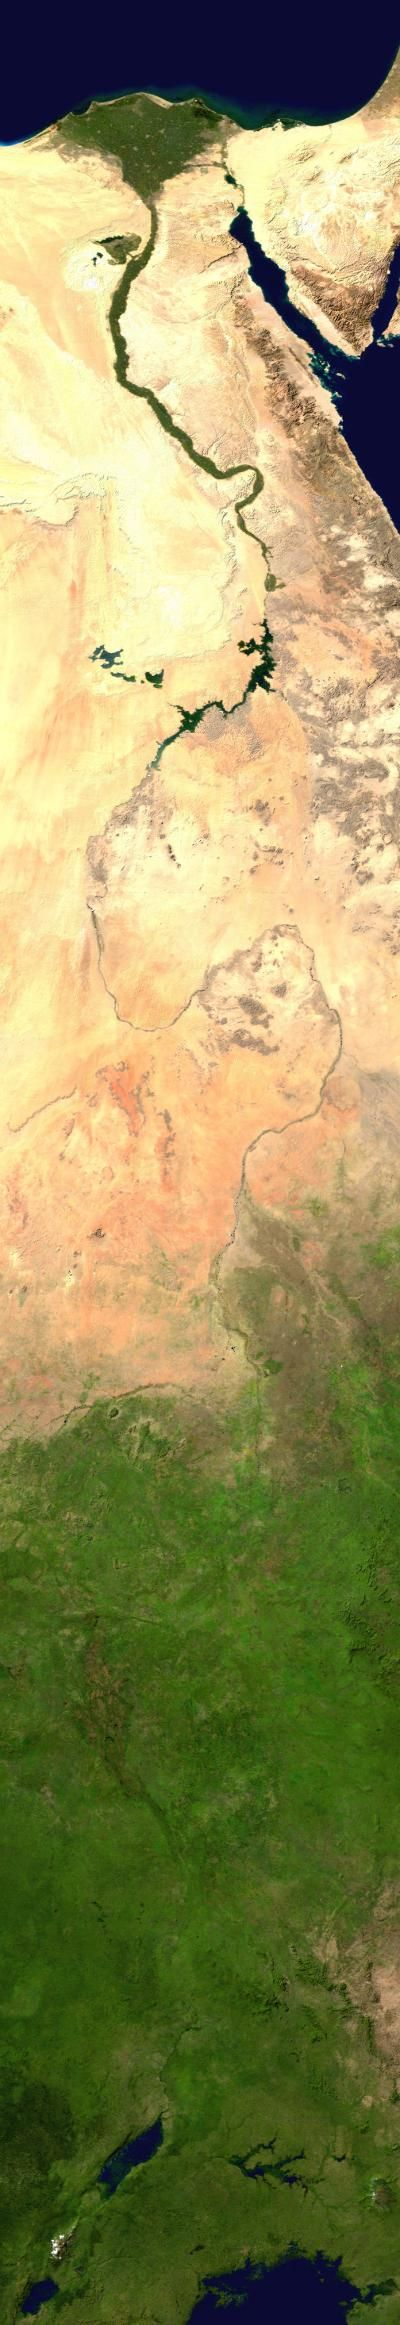 This shows a full satellite view of the Nile River. You can see the differences in the width of the river as it travels through the desert and at its end at the Mediterranean Sea. It is more difficult to track once the surrounding area gets full of life again, but based on the nearby lakes, you can locate the origins of the Blue and White Nile Rivers.